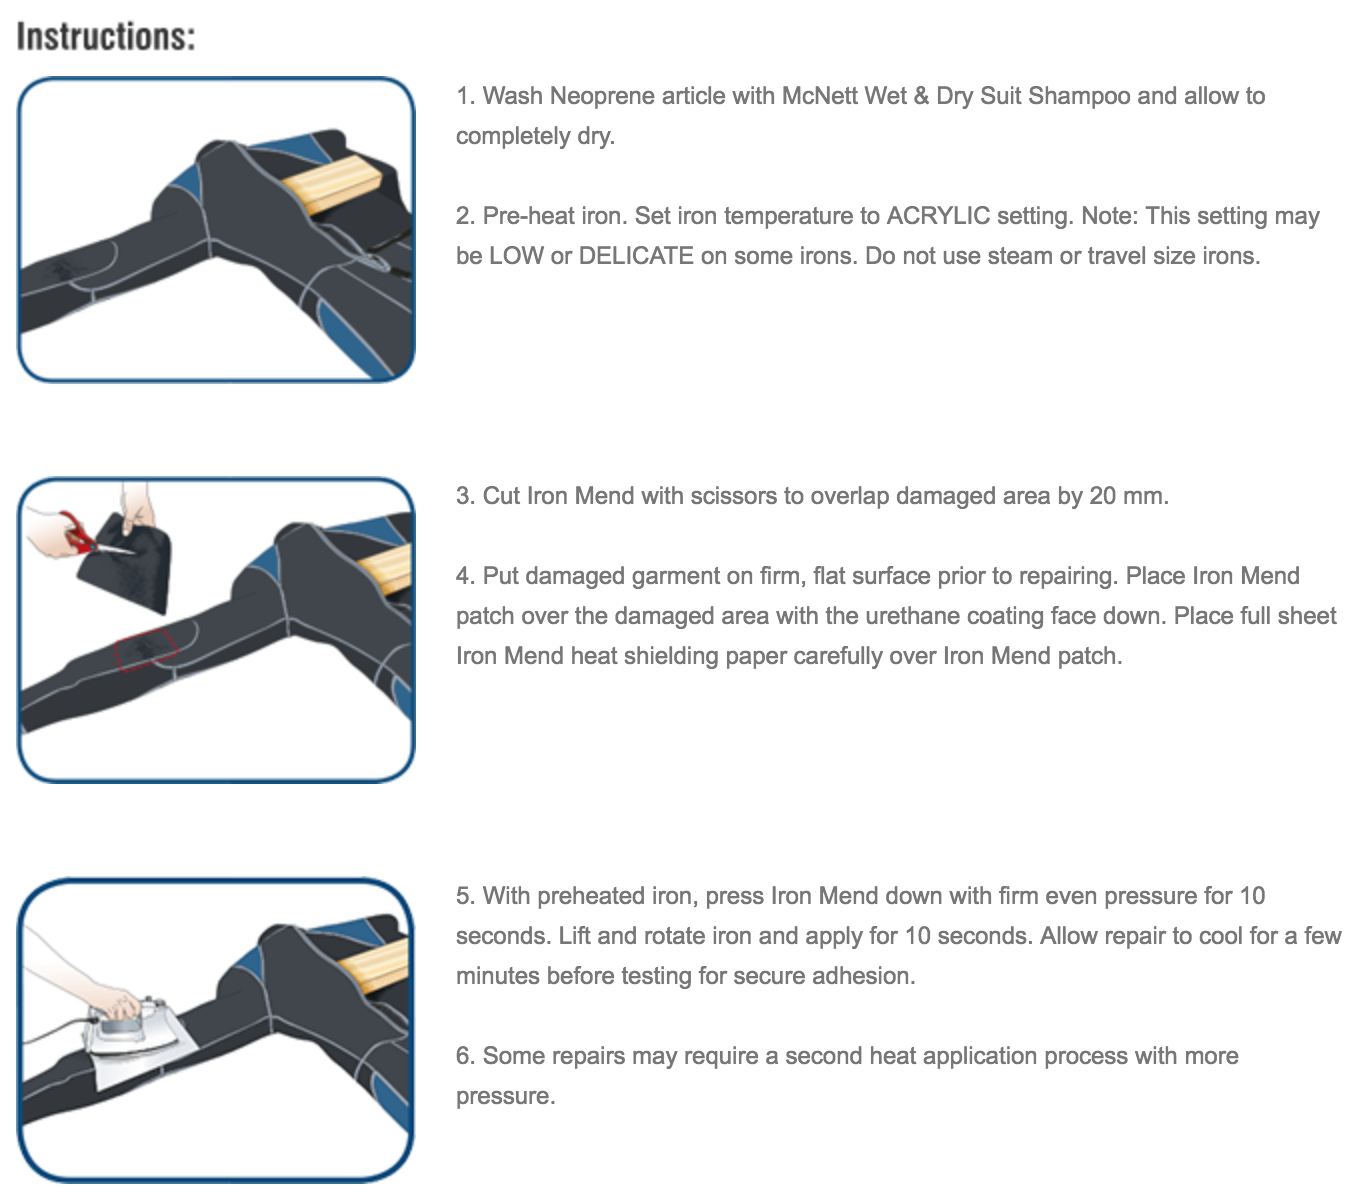 iron-mend-instructions.png